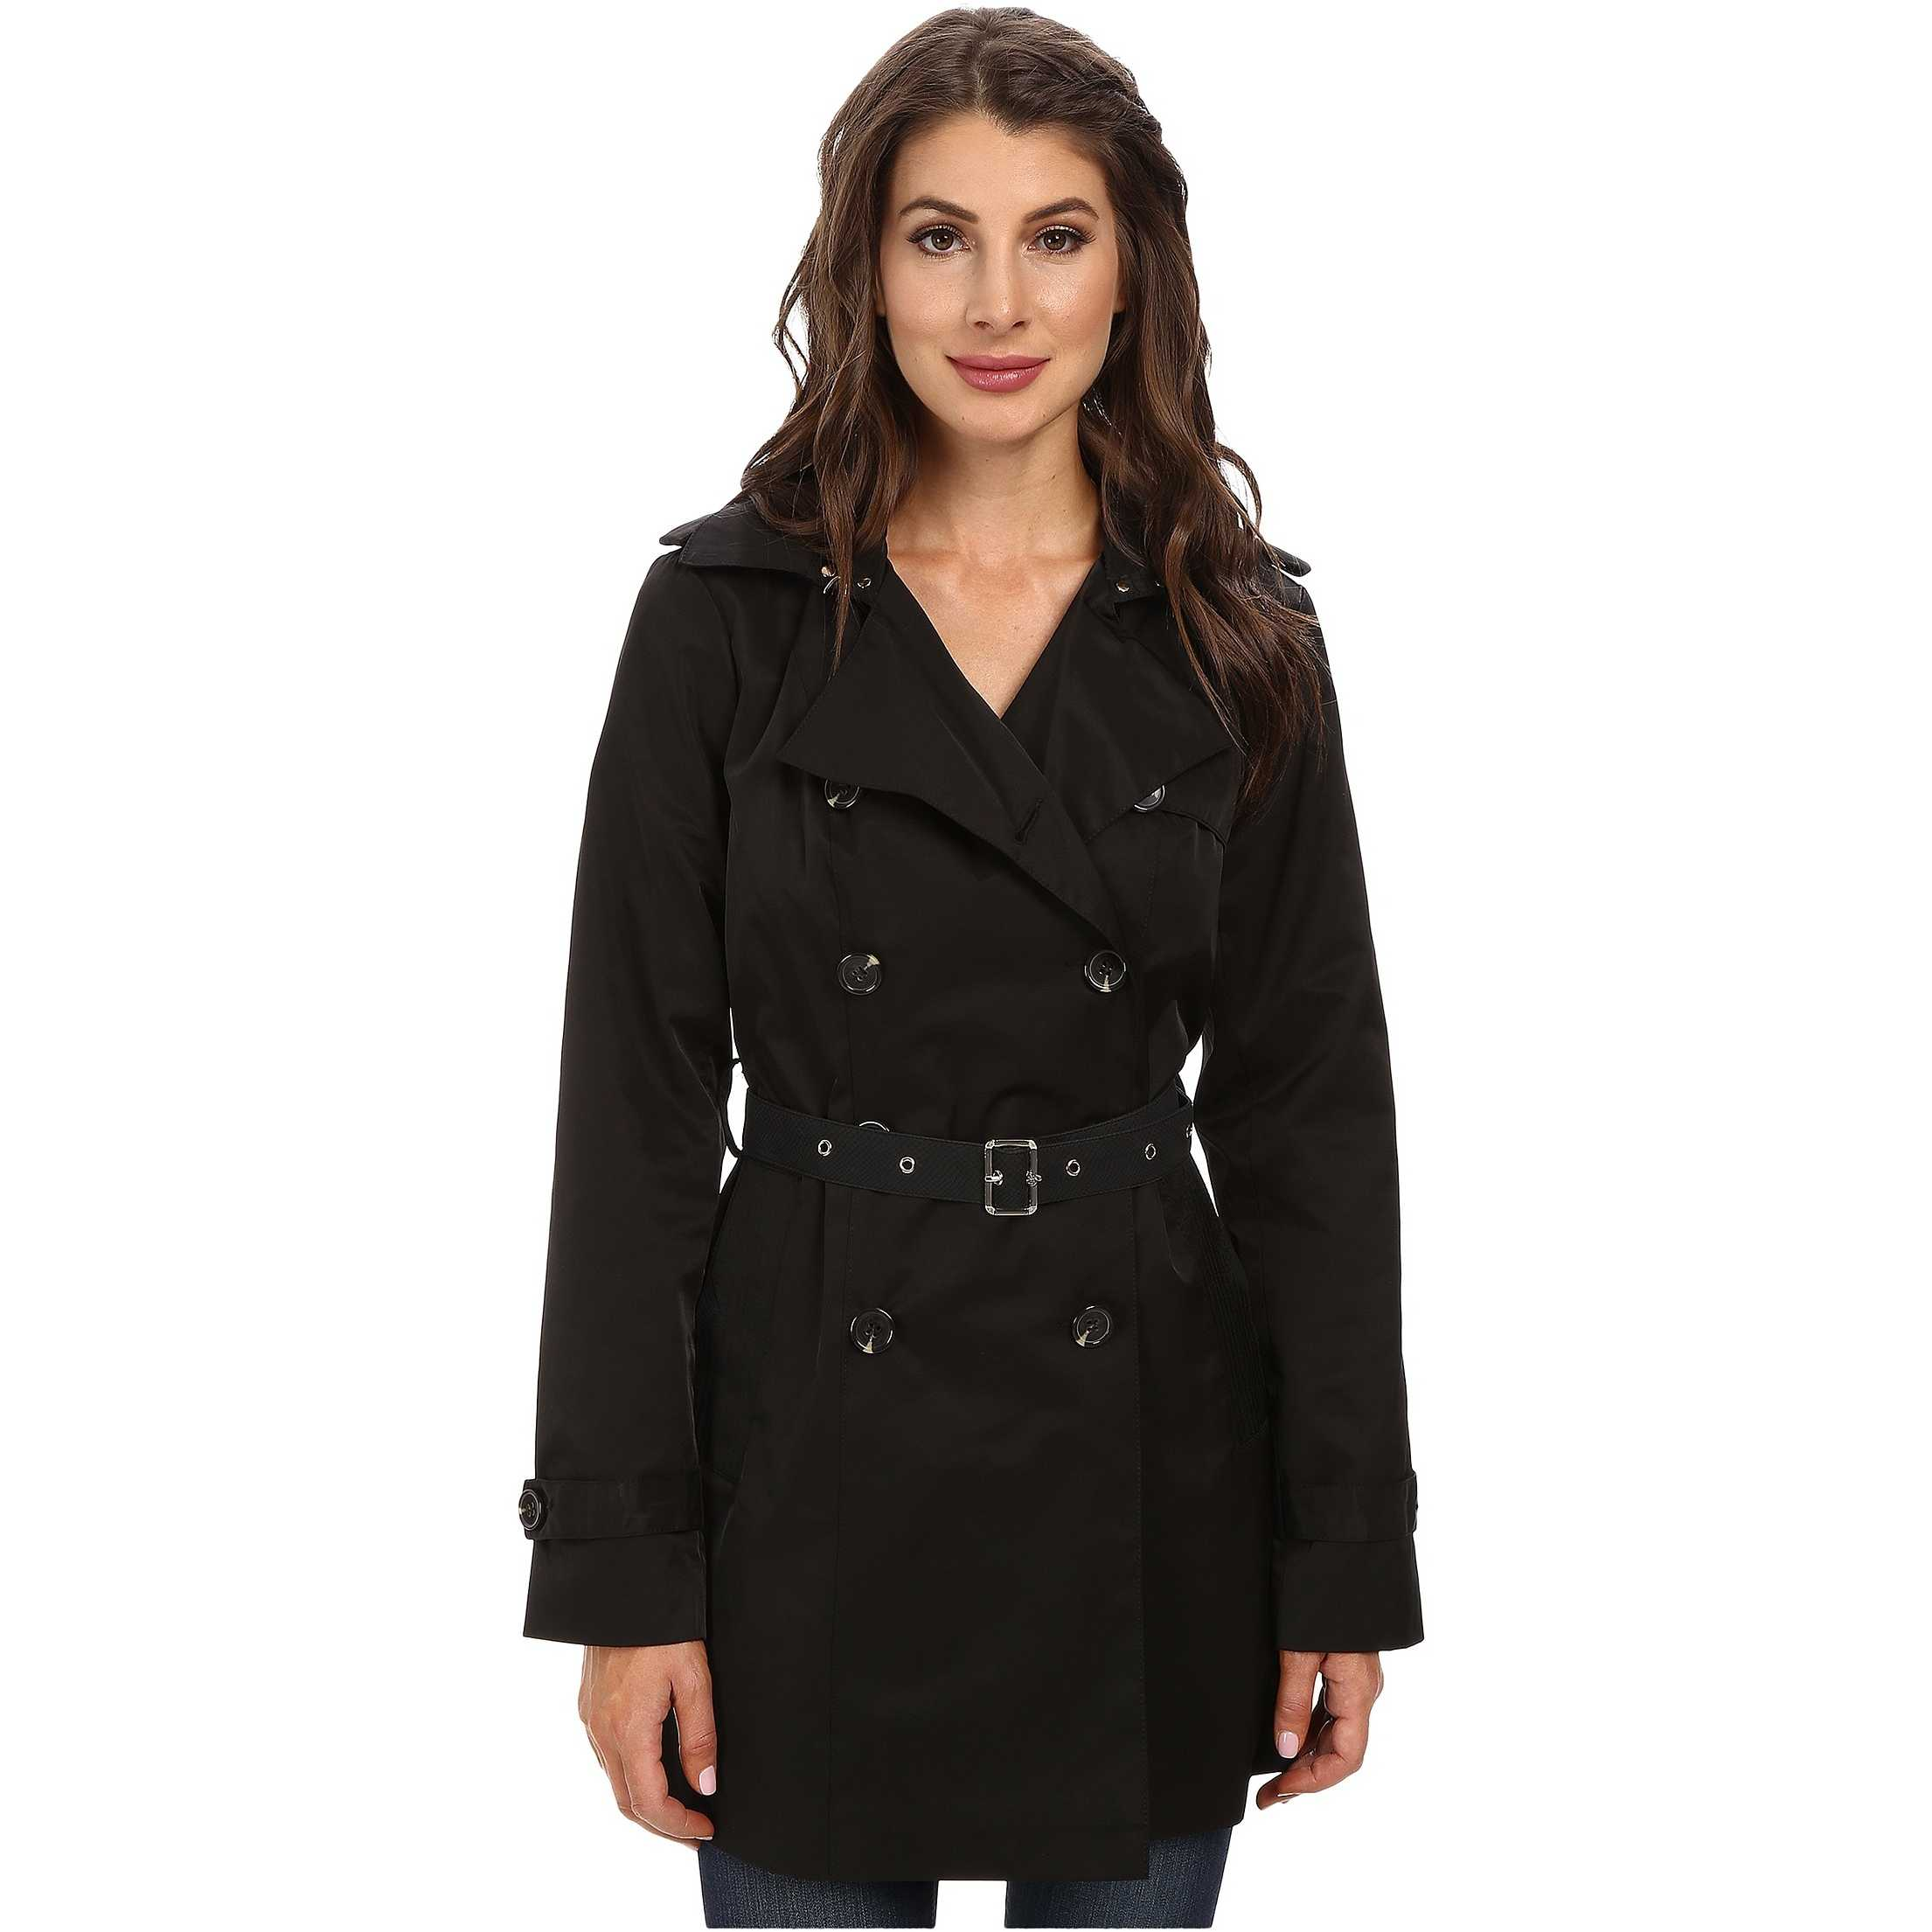 Sam Edelman Double Breasted Trench w/ Vegan Leather Trim Black trench femei